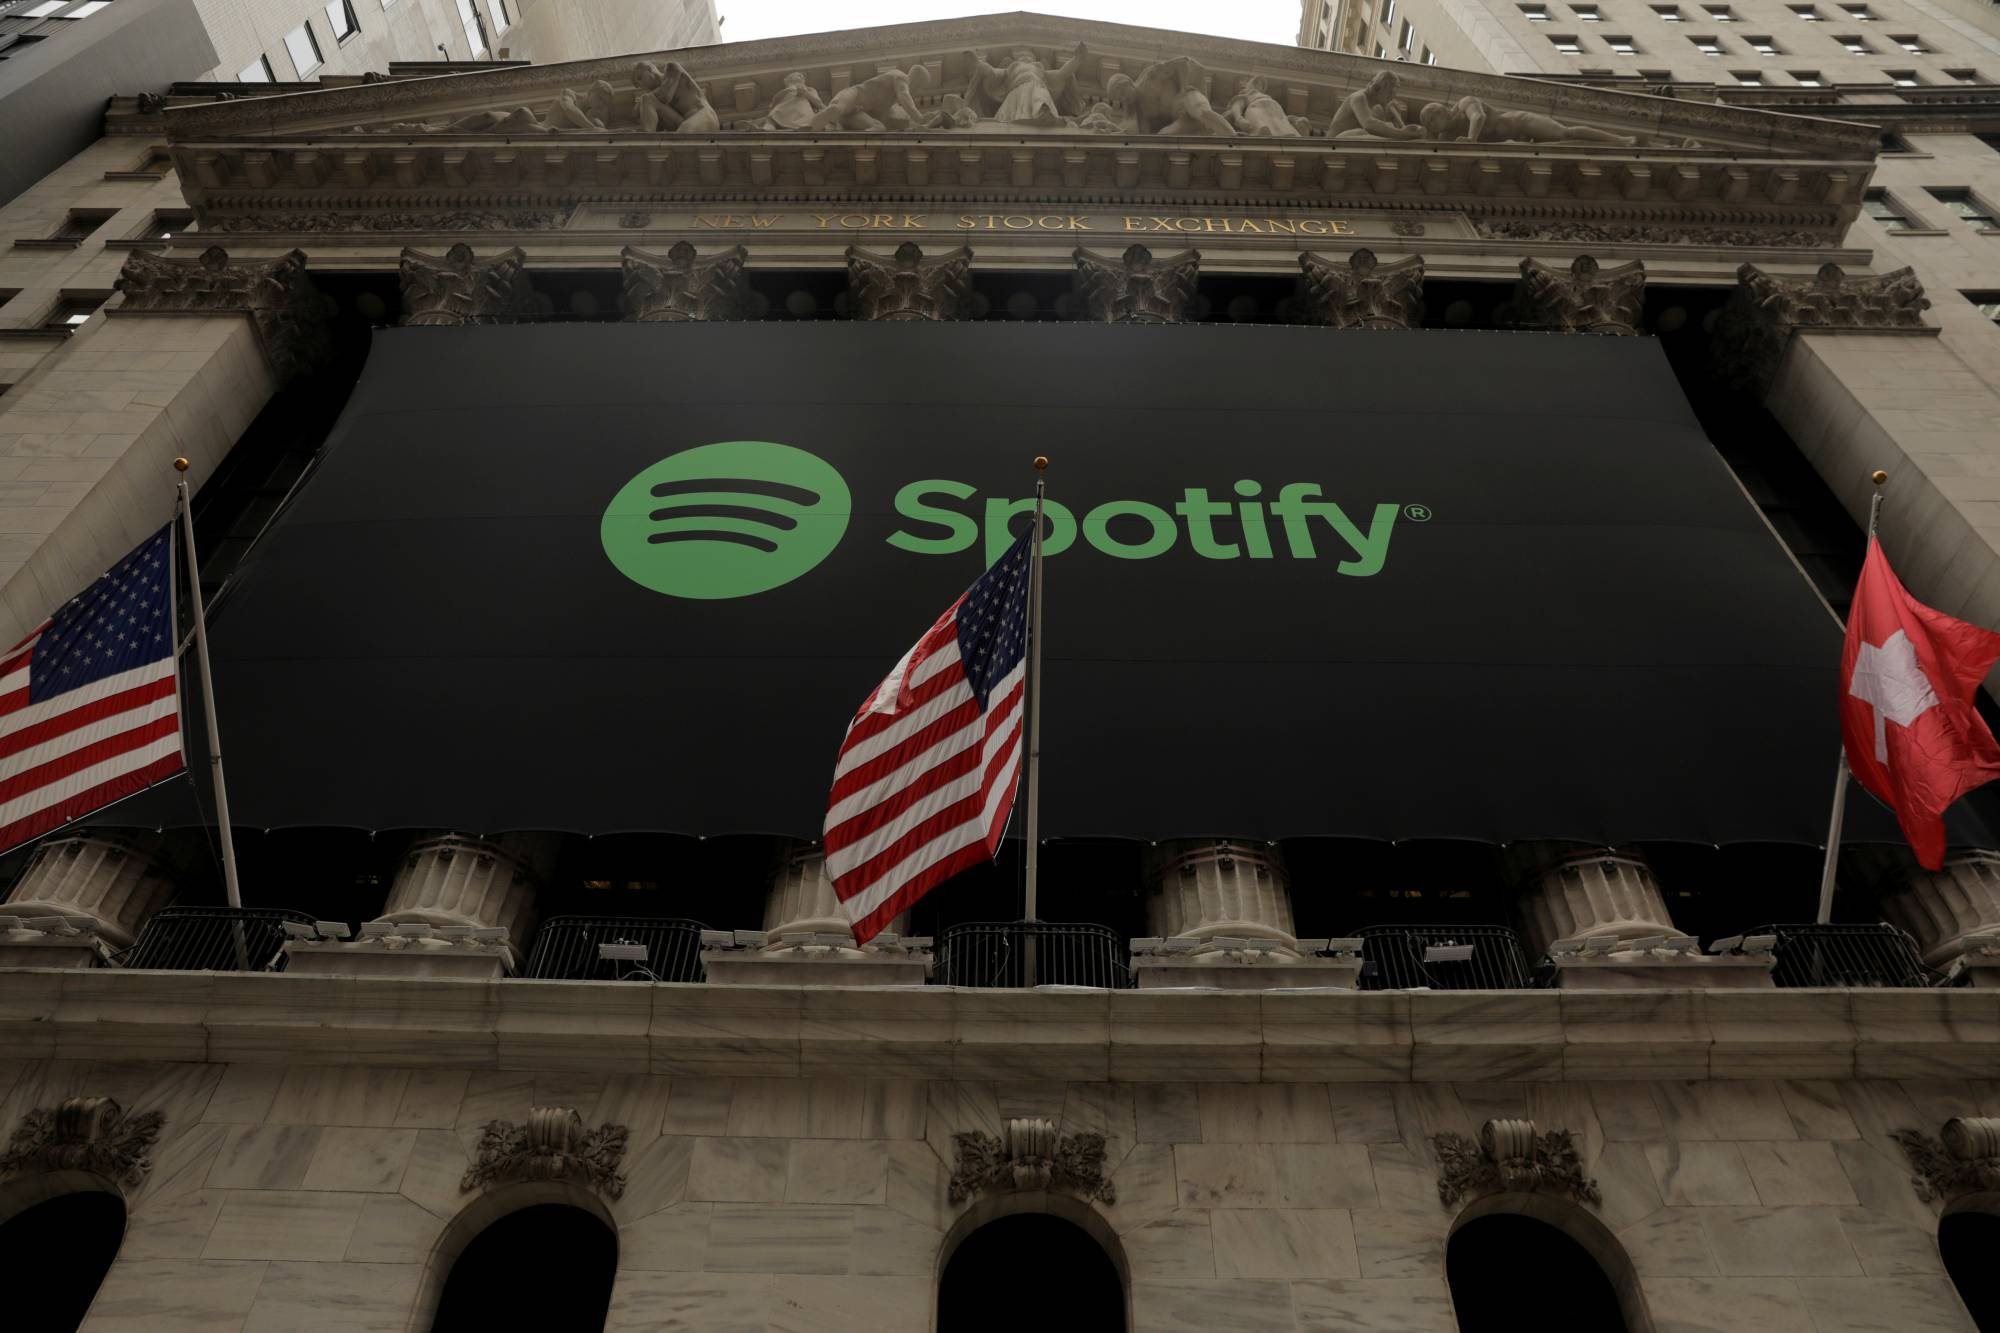 Spotify to Use DNA to Personalize Music Playlists | Fortune